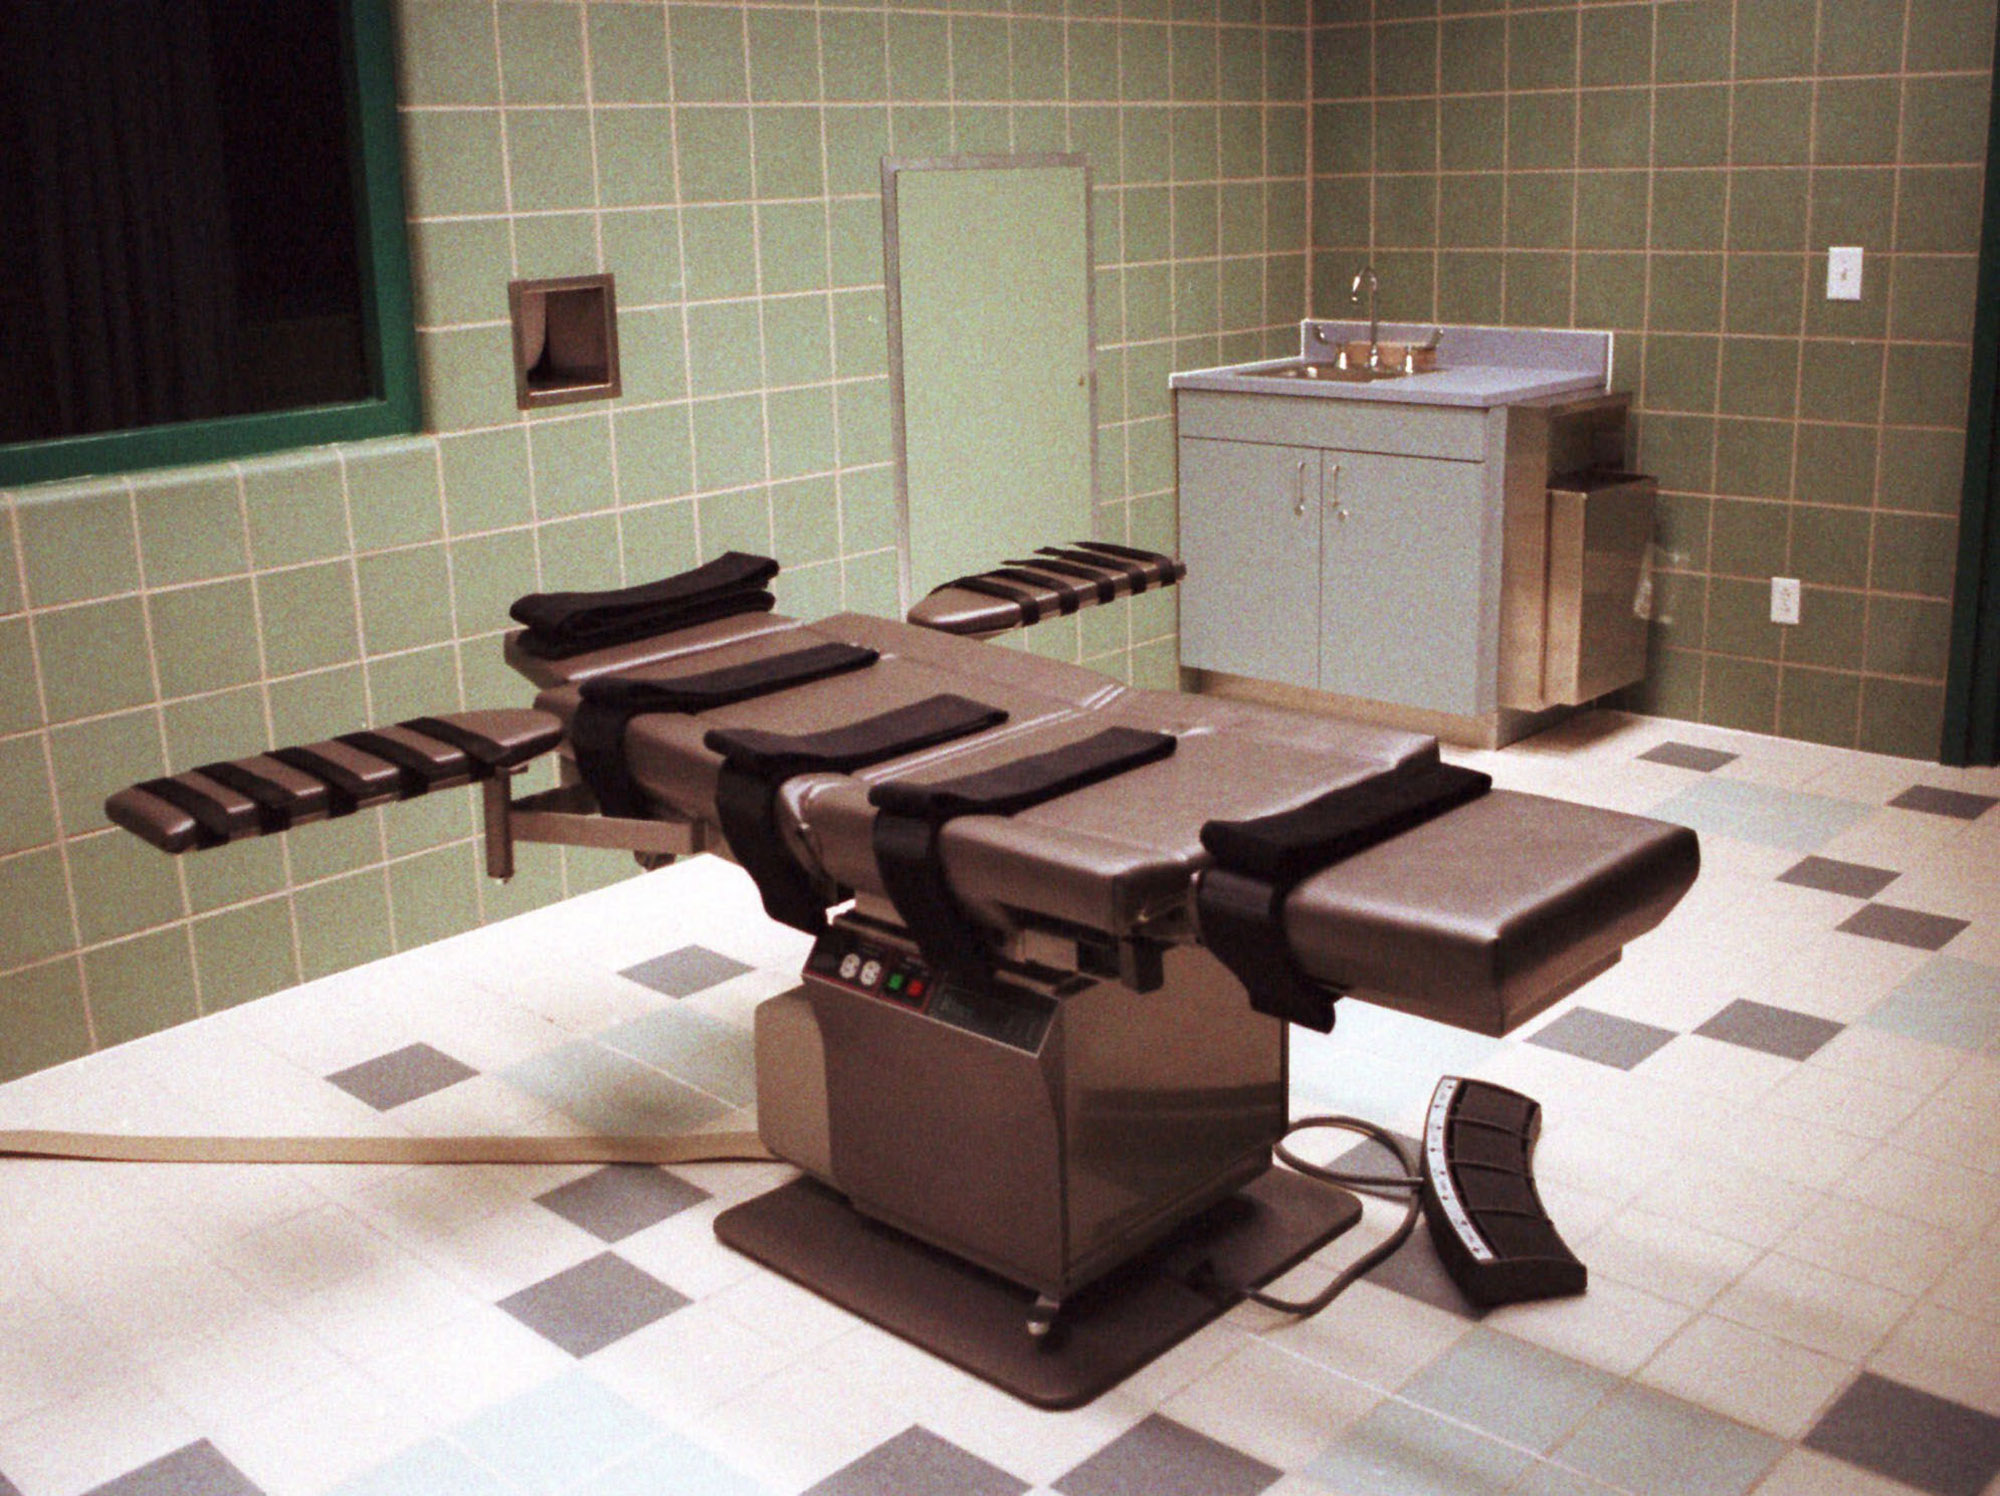 The death chamber, equipped for lethal injection, at the U.S. Penitentiary in Terre Haute, Ind., shown in this April 1995 photo.